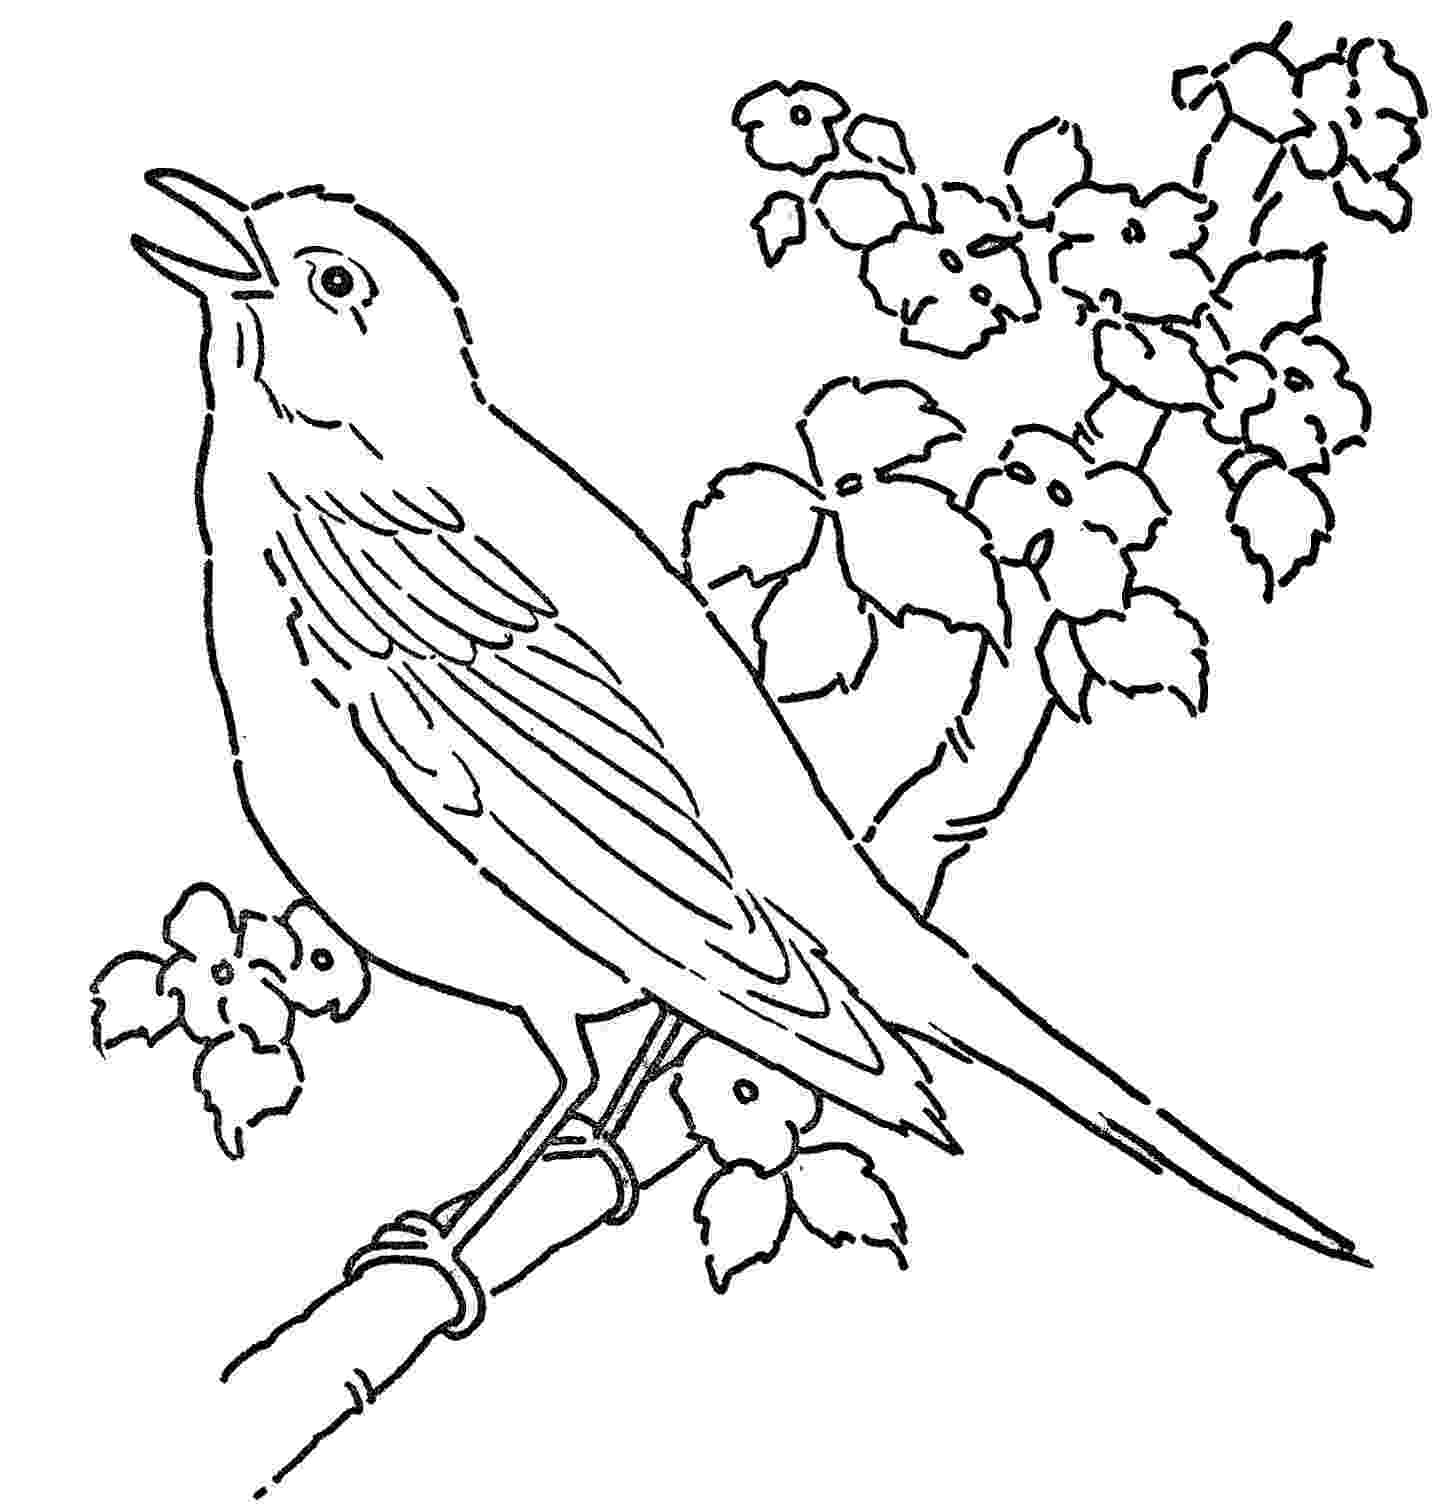 bird coloring pages free bird coloring pages to download and print for free pages coloring free bird